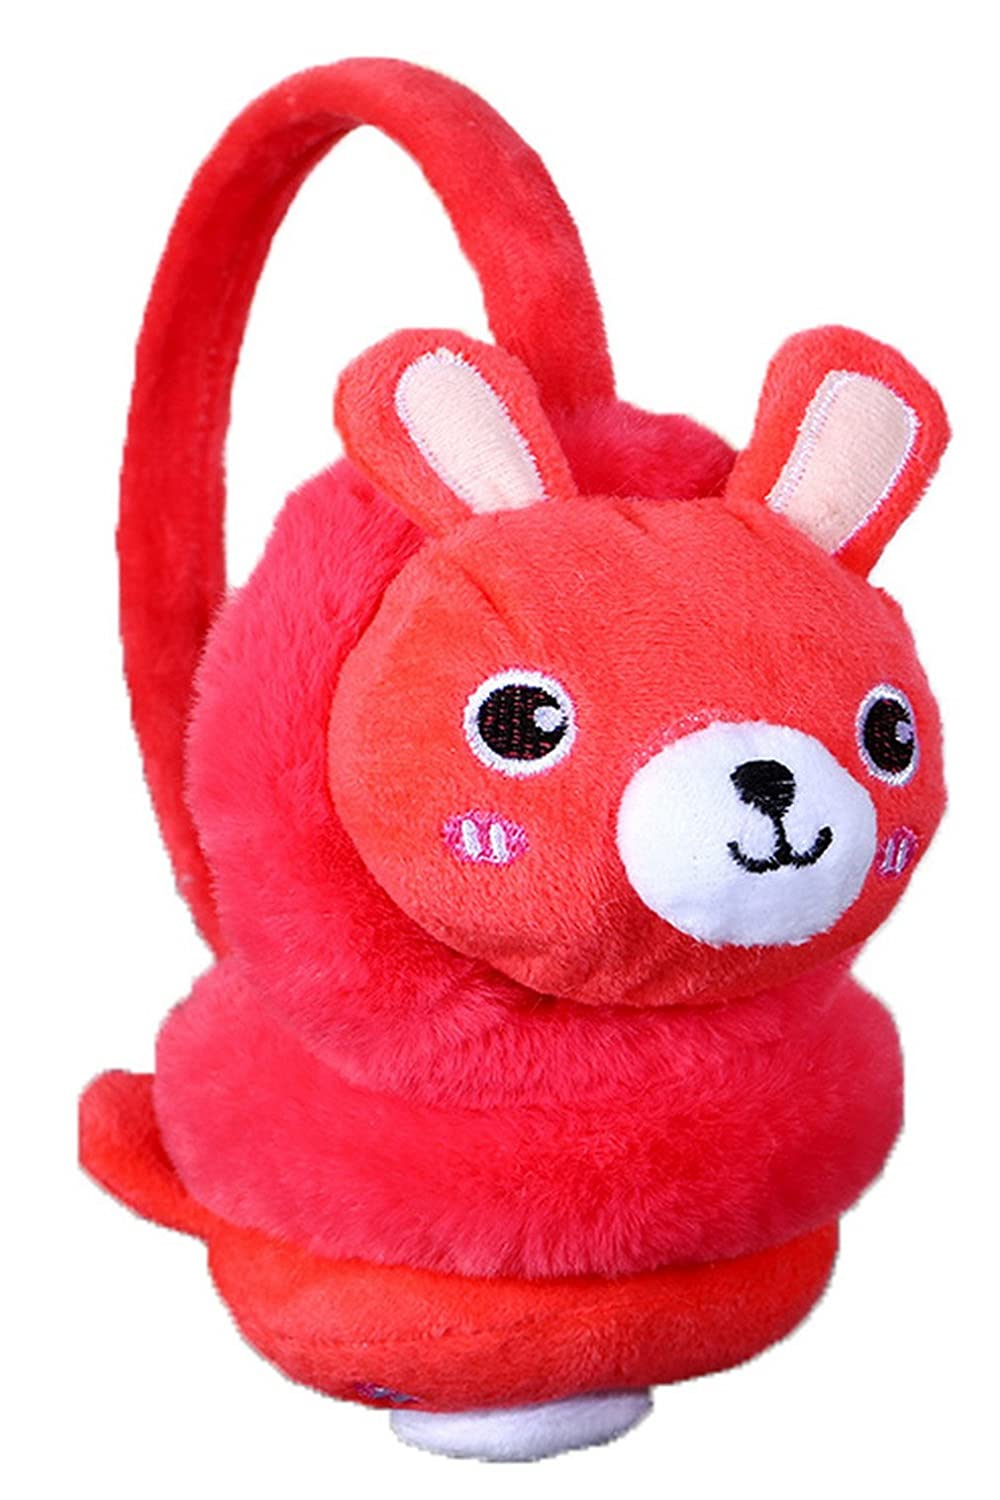 Jelord Cartoon Plush Earmuffs Winter Fleece Ear Warmers